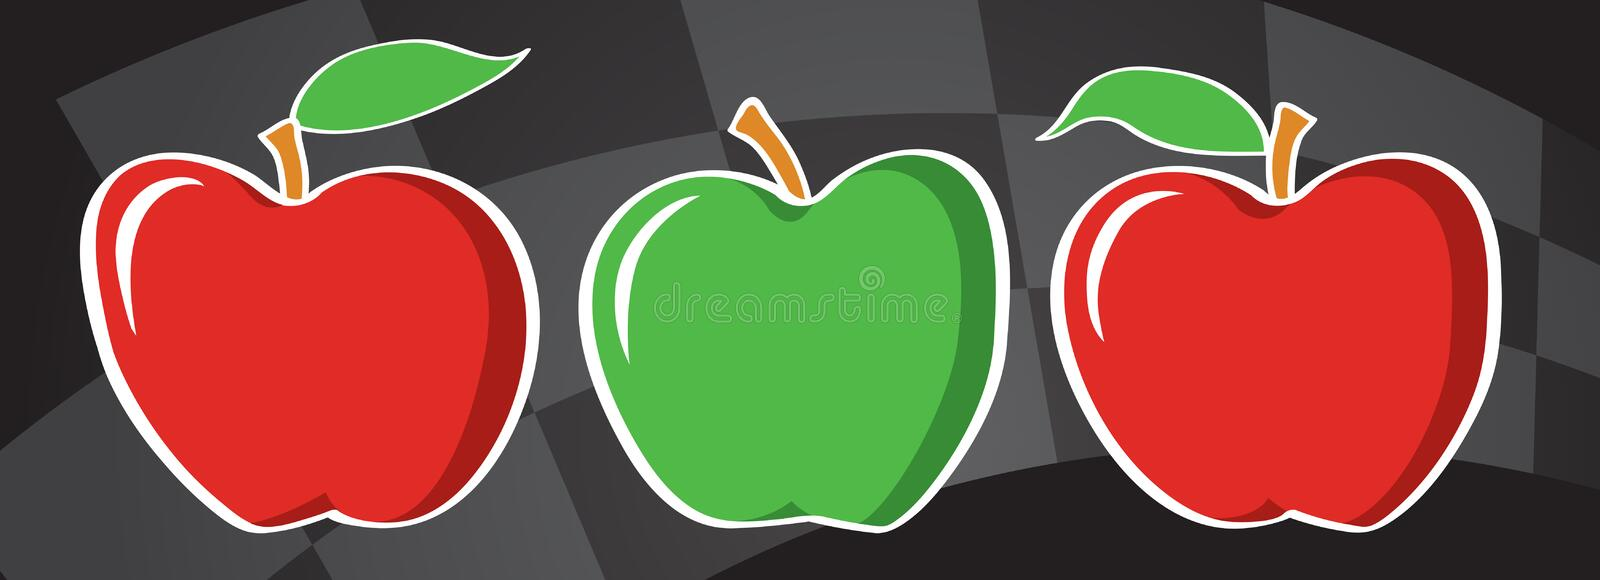 Apples to Apples. Three delicious apples in a row, two are red, one green. A perfect page for an ad background or colorful header. A retro 50s designed, colorful stock illustration